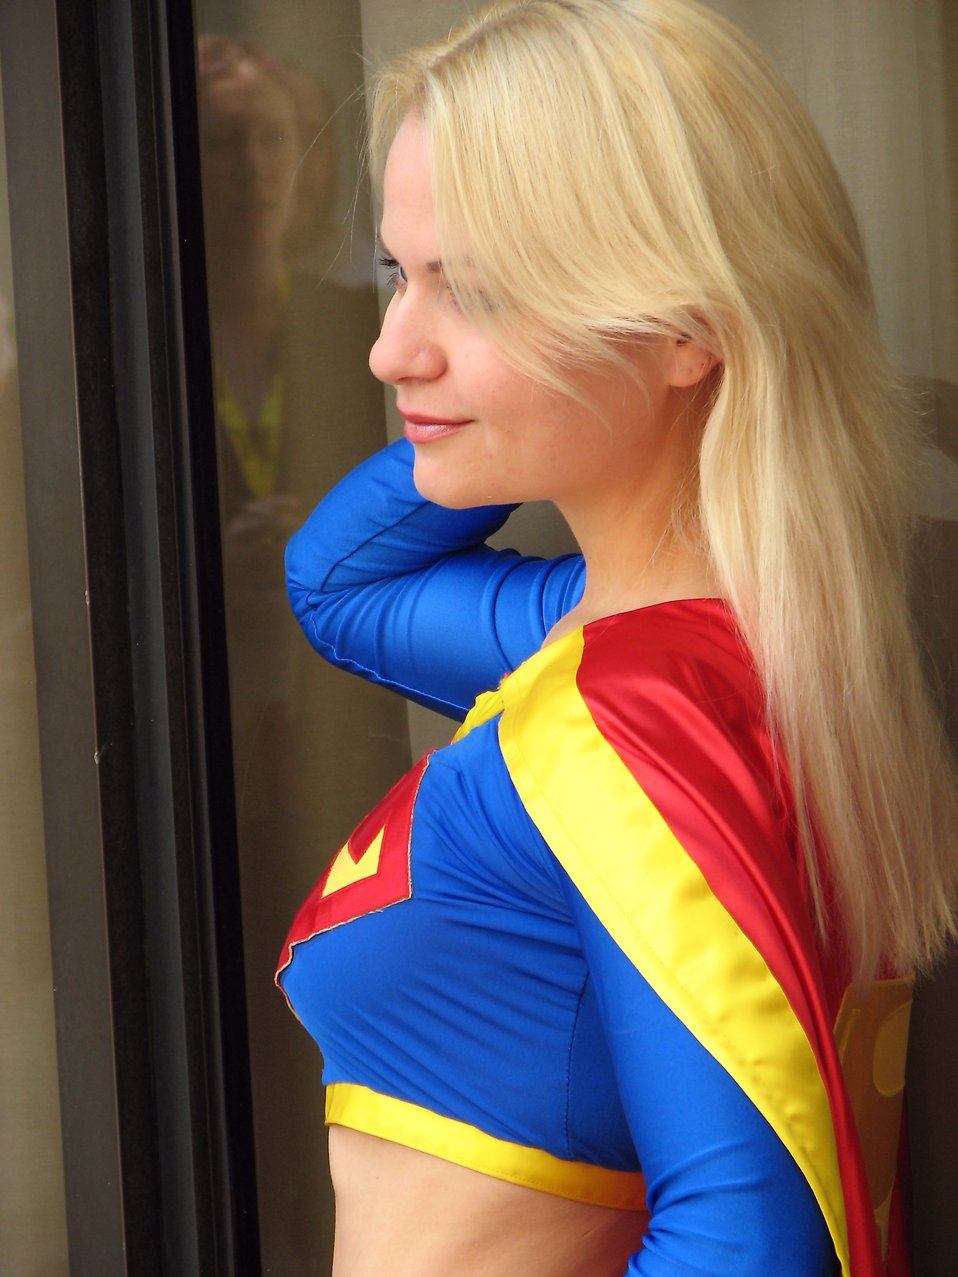 Closeup portrait of woman posing as Supergirl : Free Stock Photo